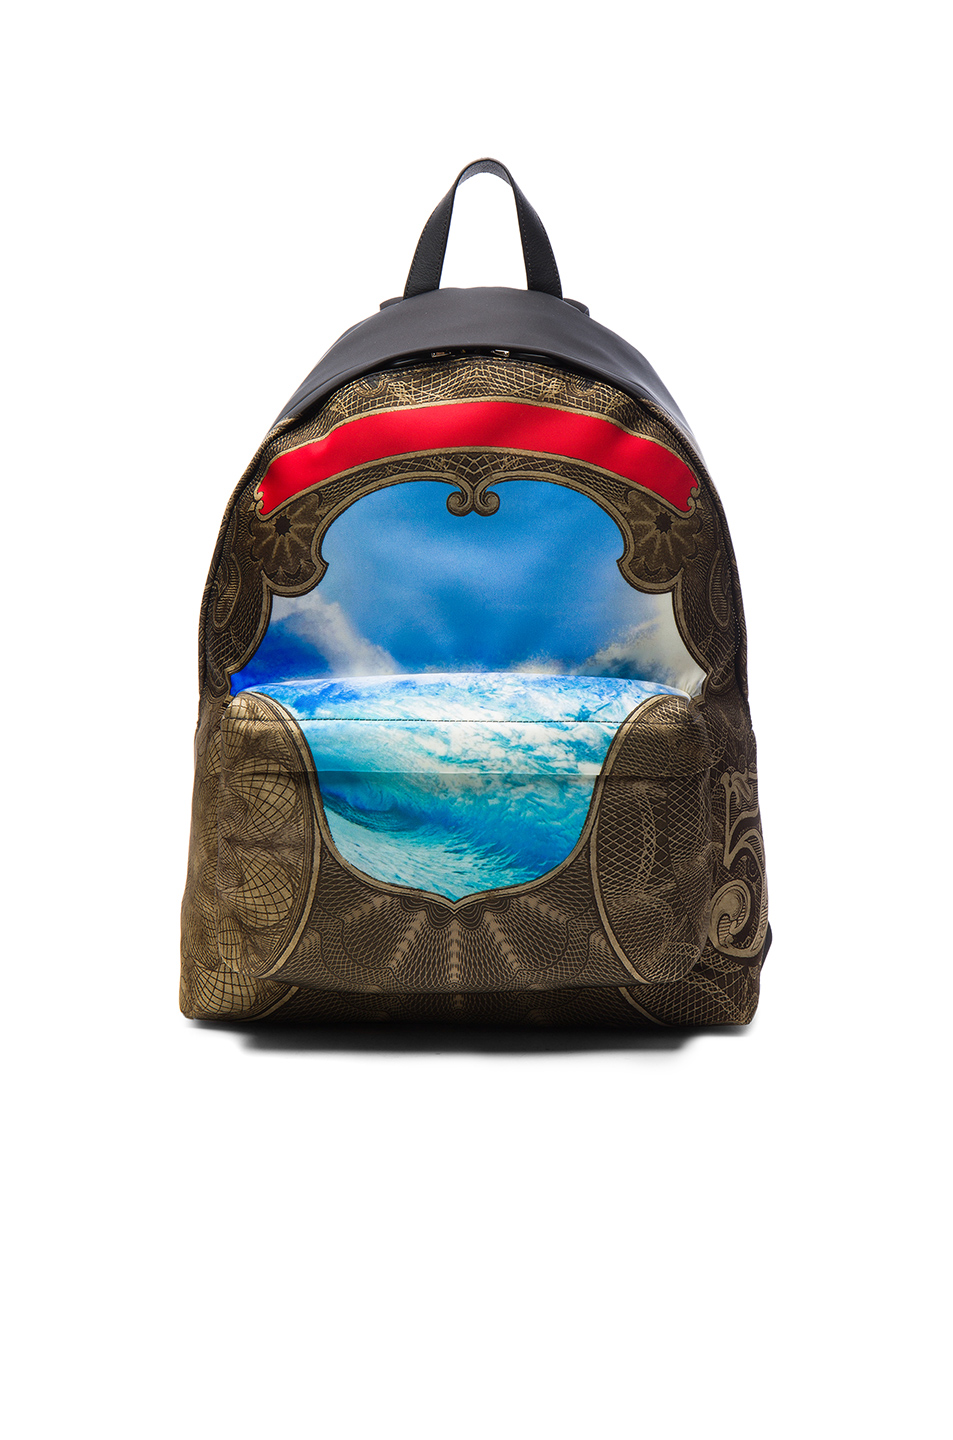 Givenchy Wave Print Backpack in Blue,Black